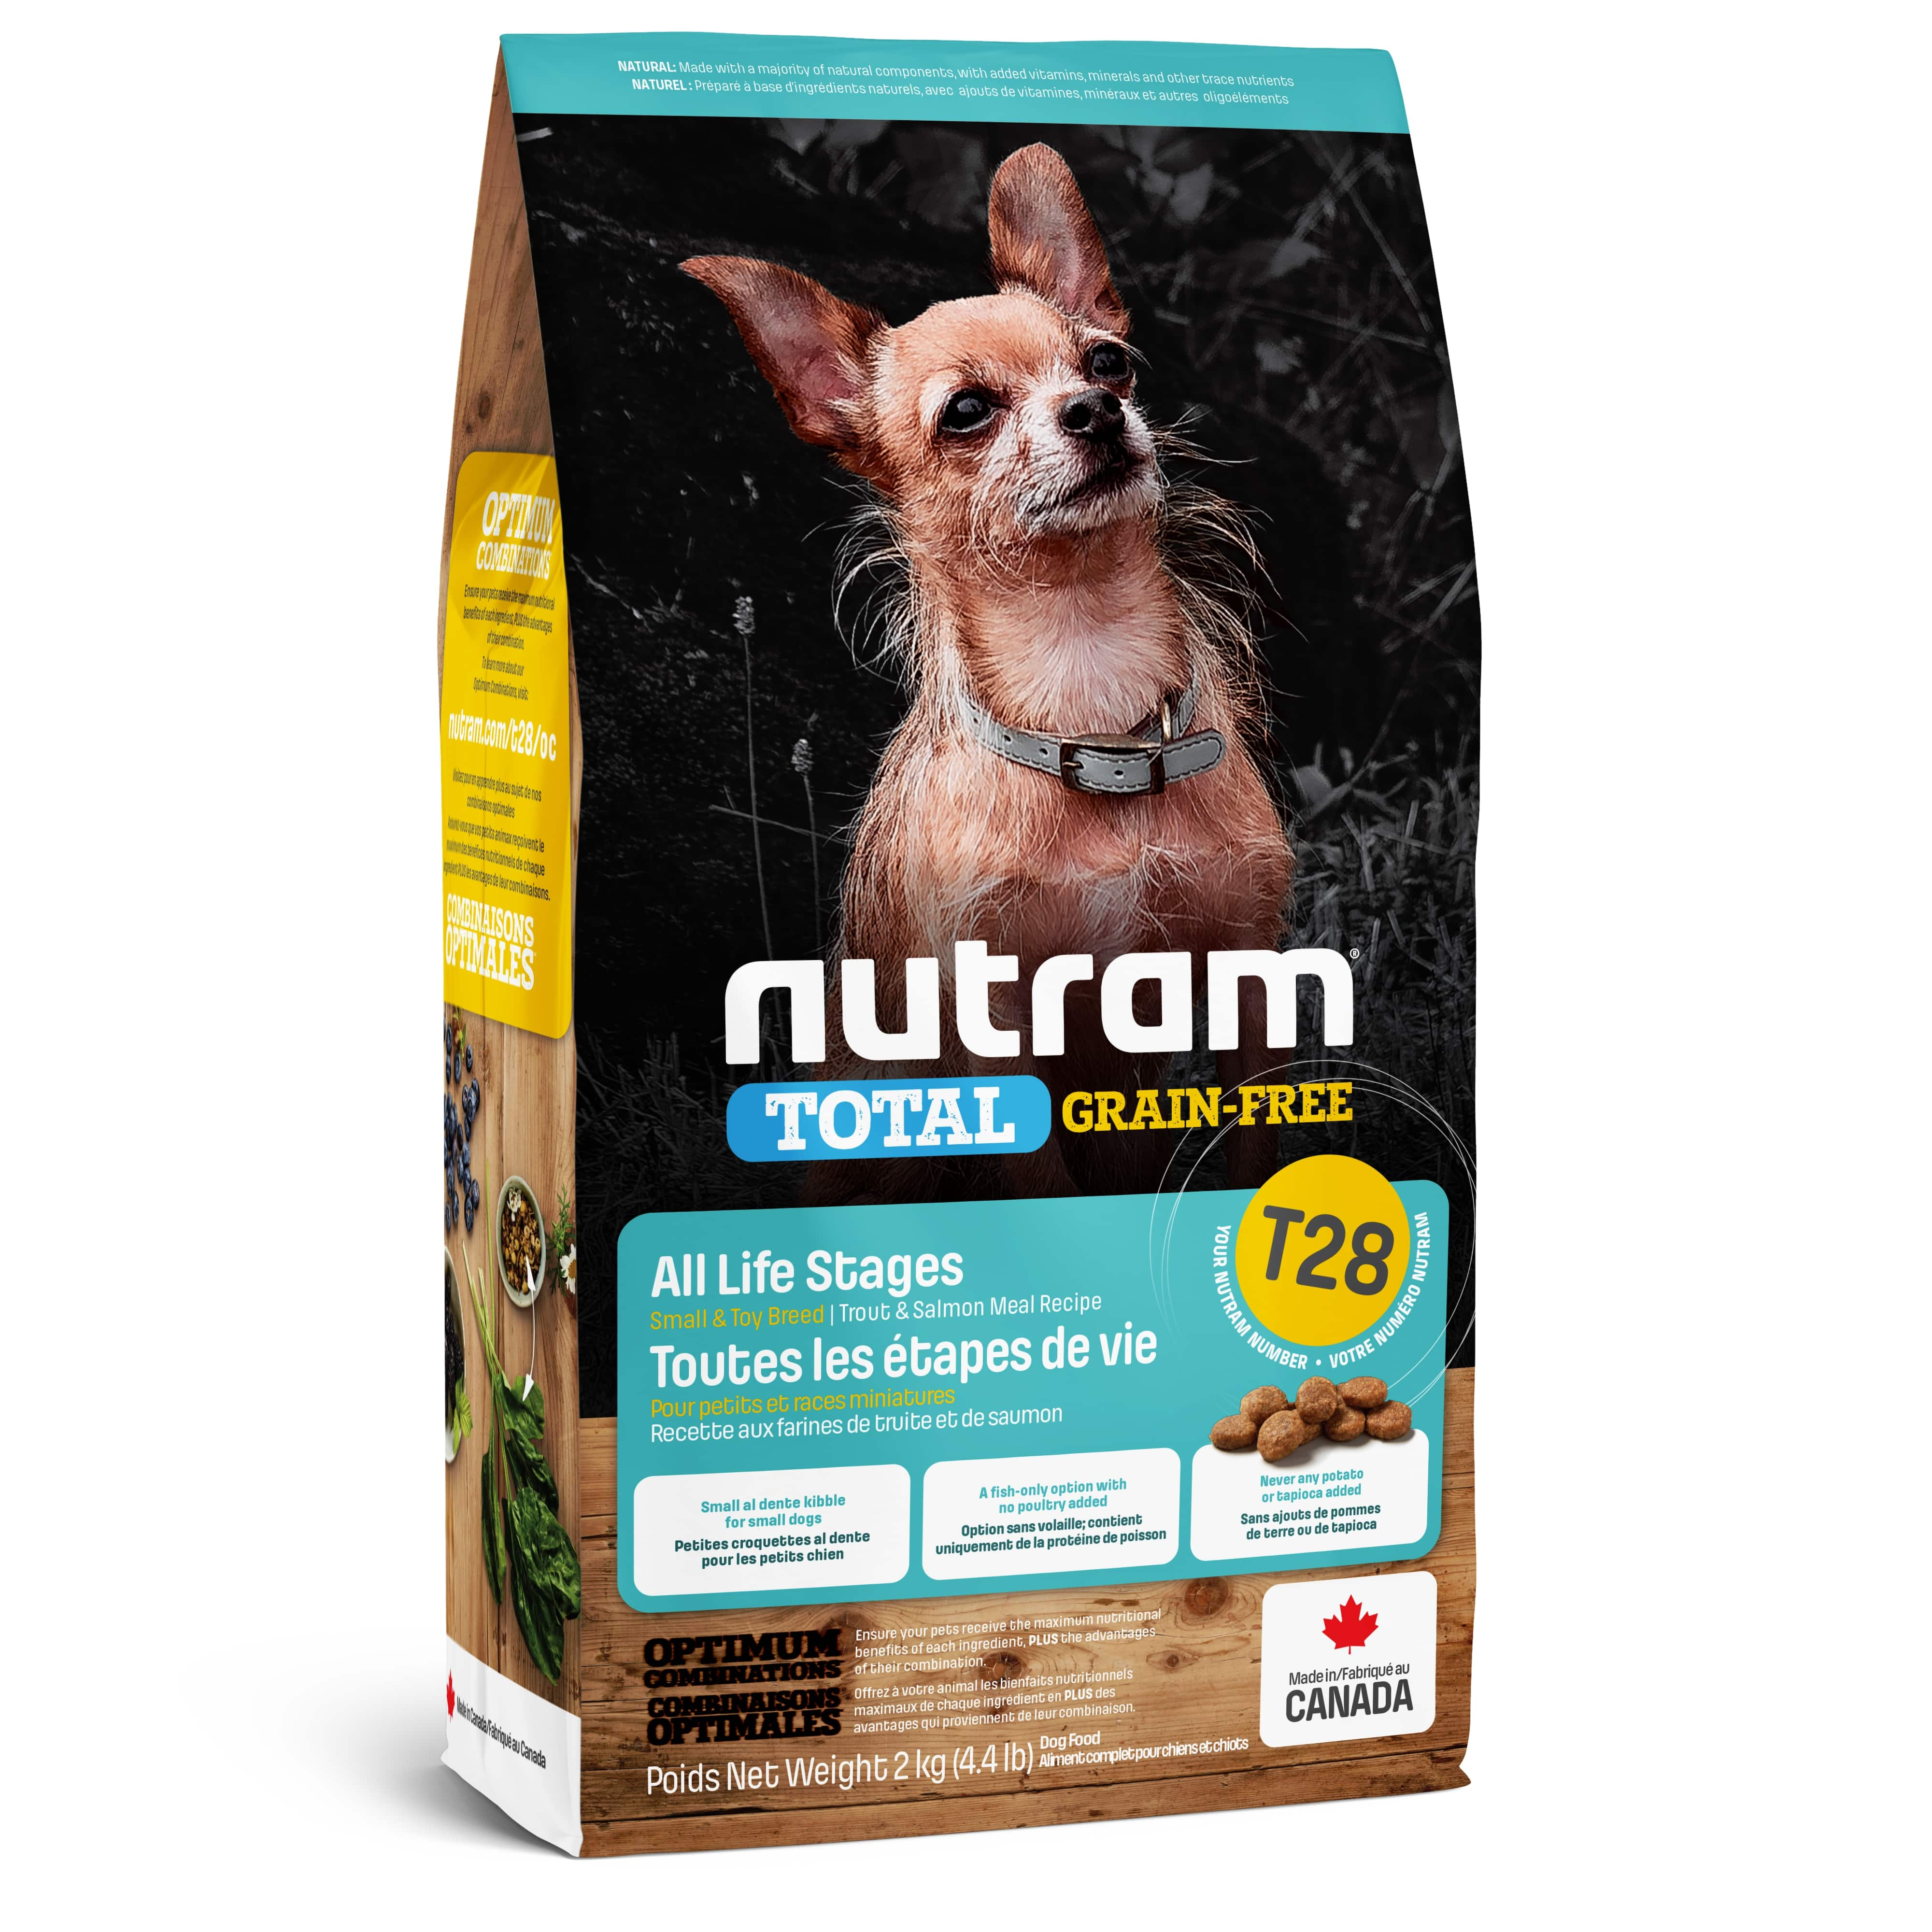 T28 Nutram Total Grain-Free® Salmon & Trout Small Breed Dog Food